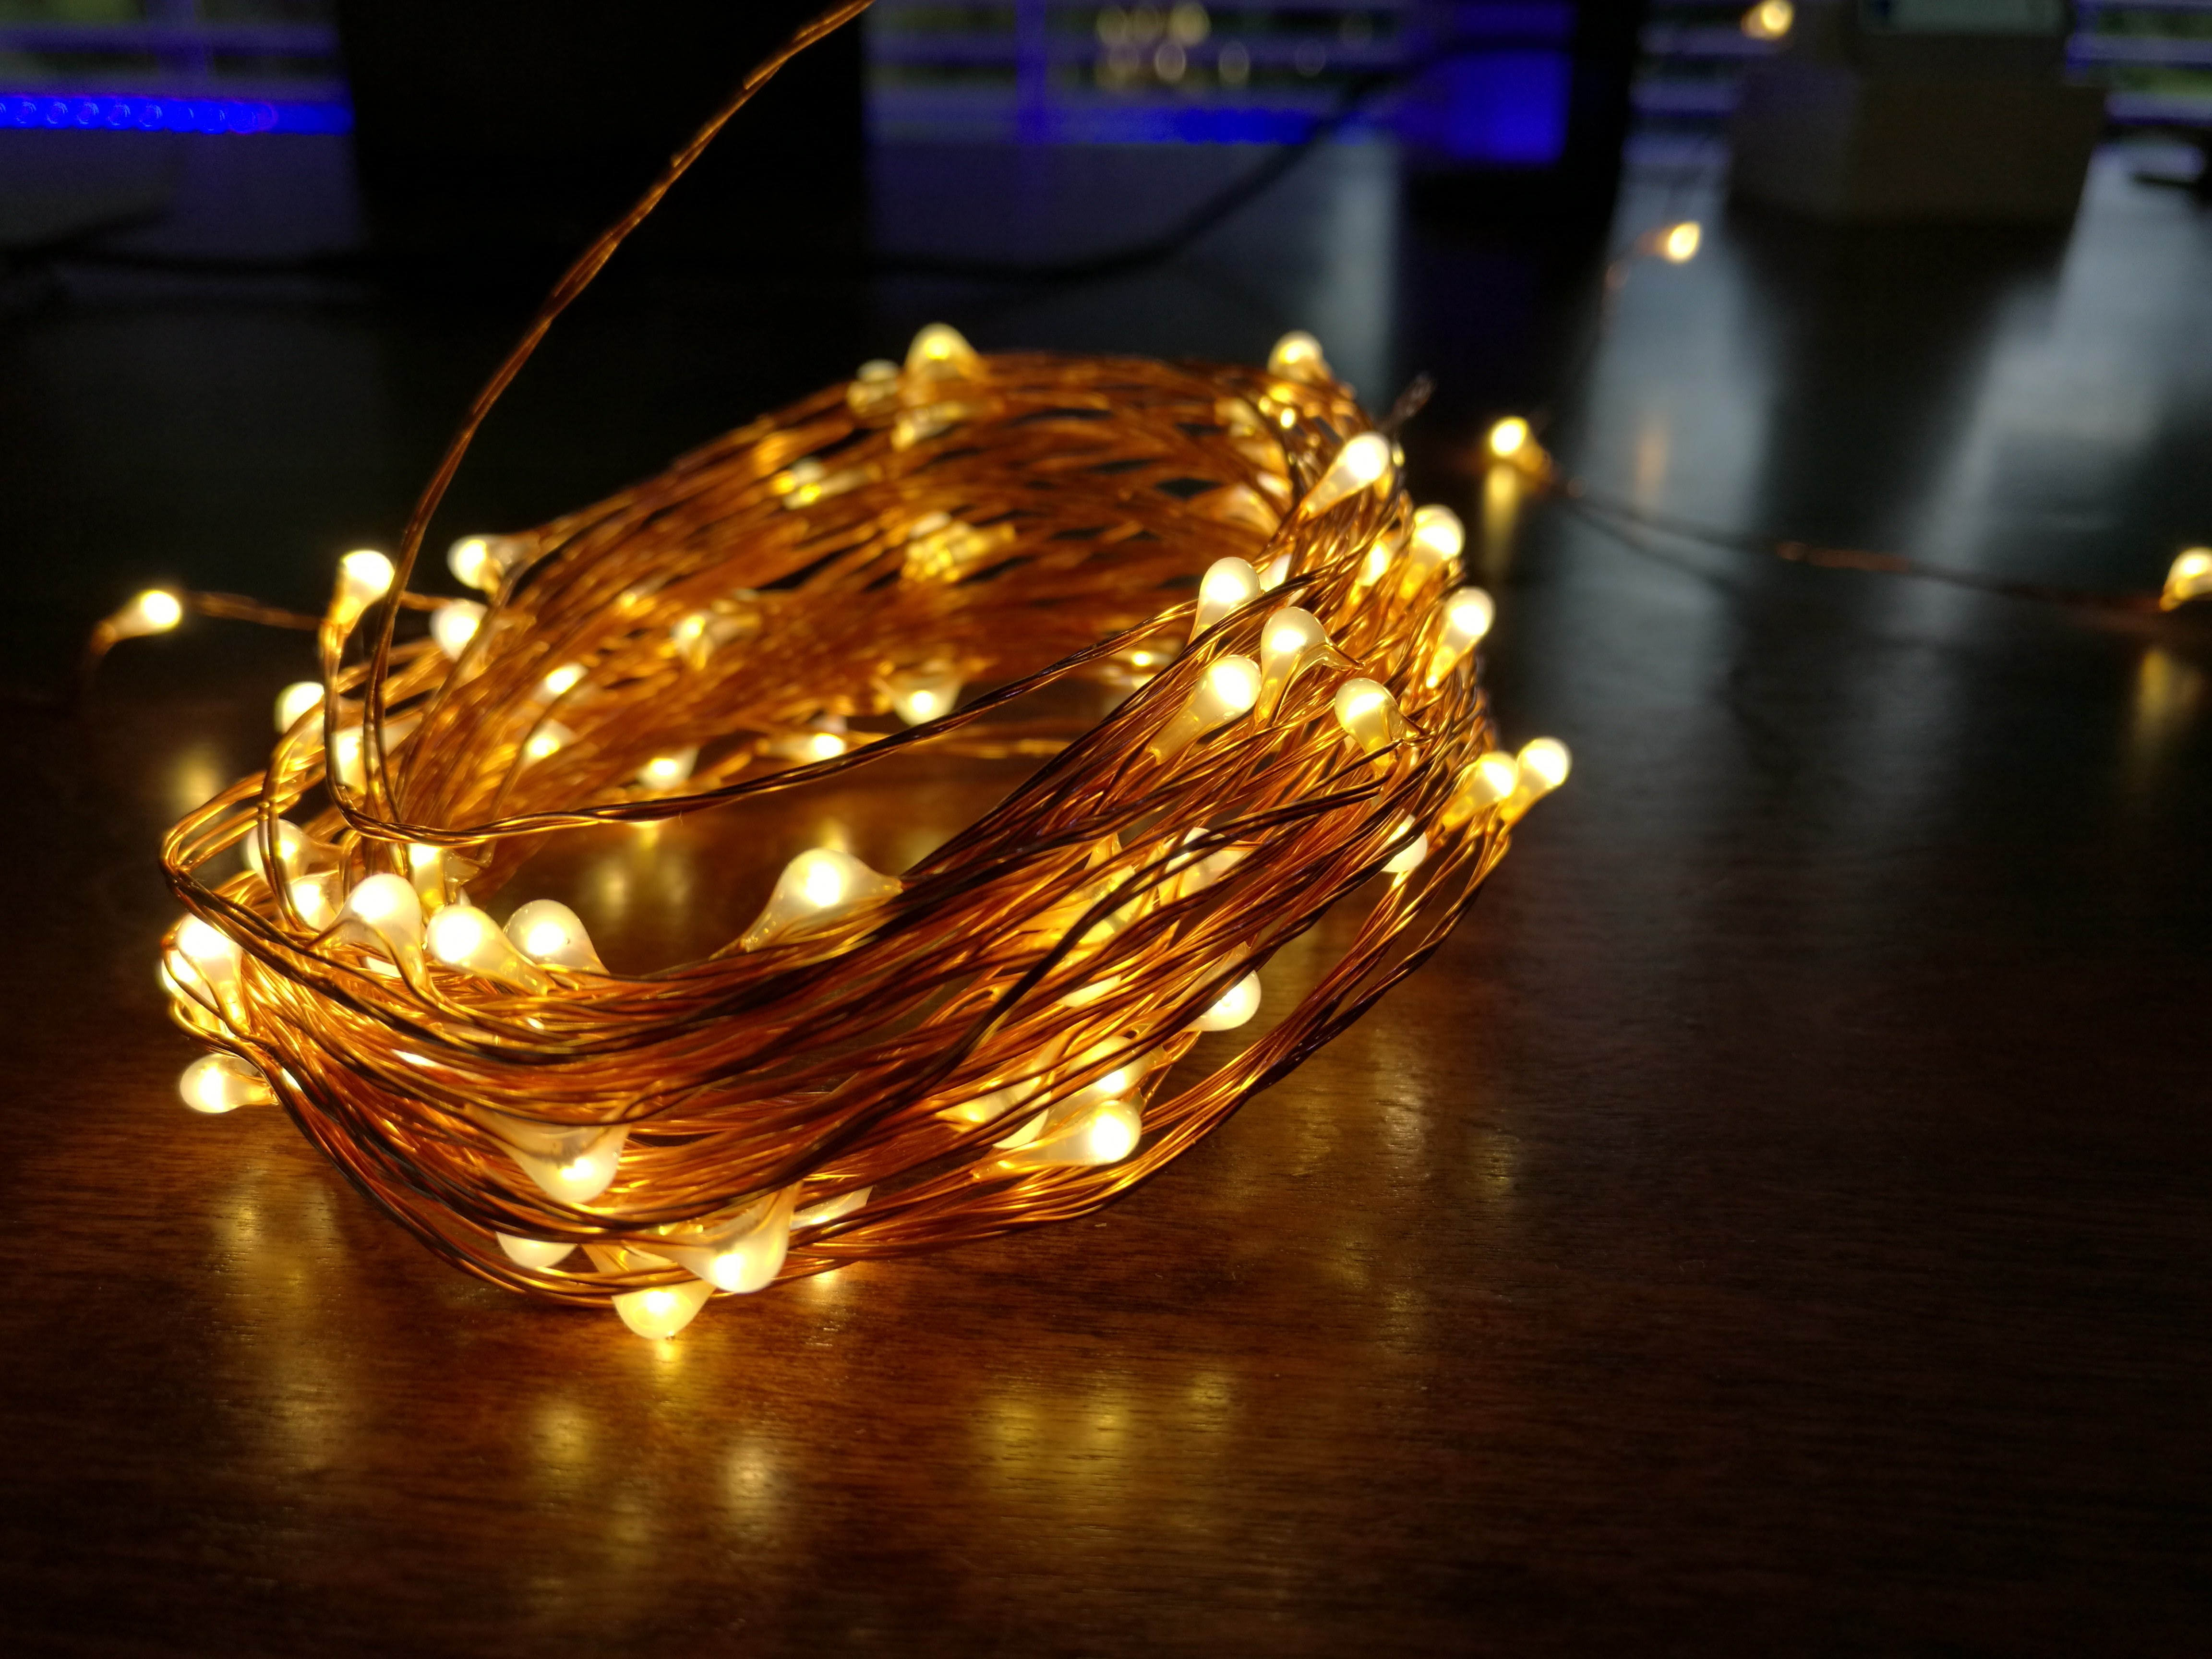 Eufy String Lights Review: High Quality, High Price